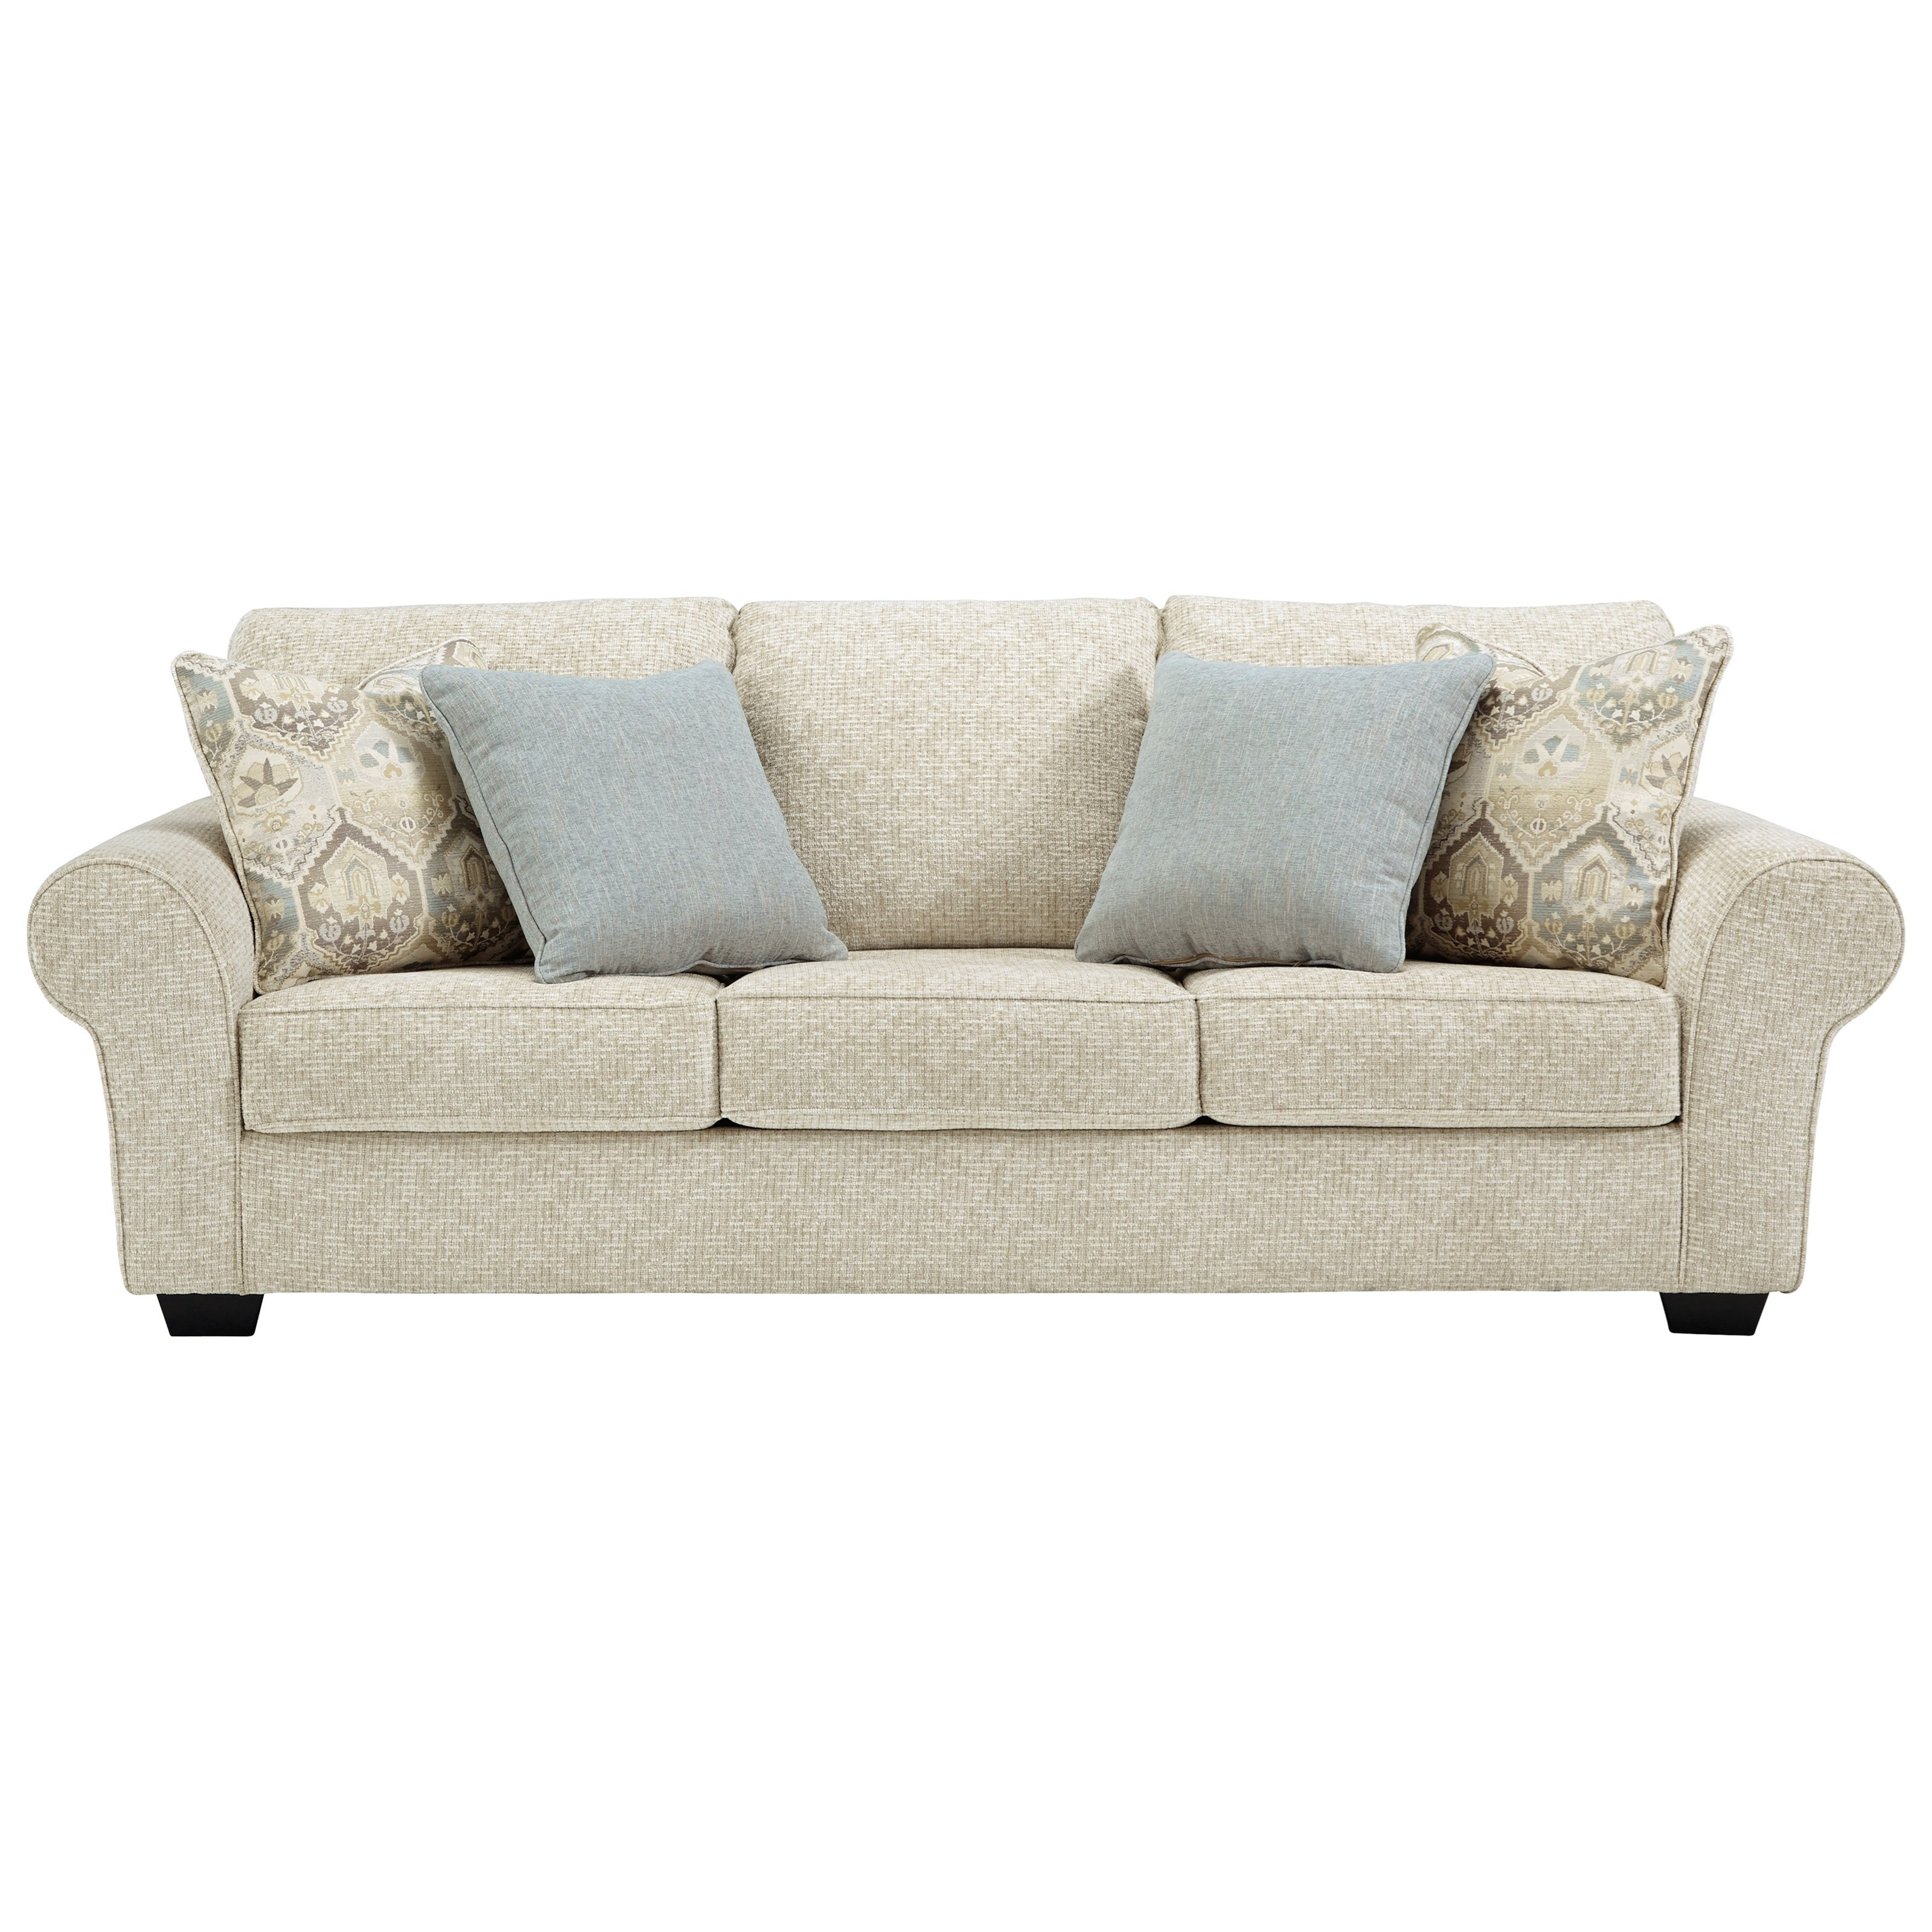 Haisley Sofa Sleeper by Benchcraft at Northeast Factory Direct